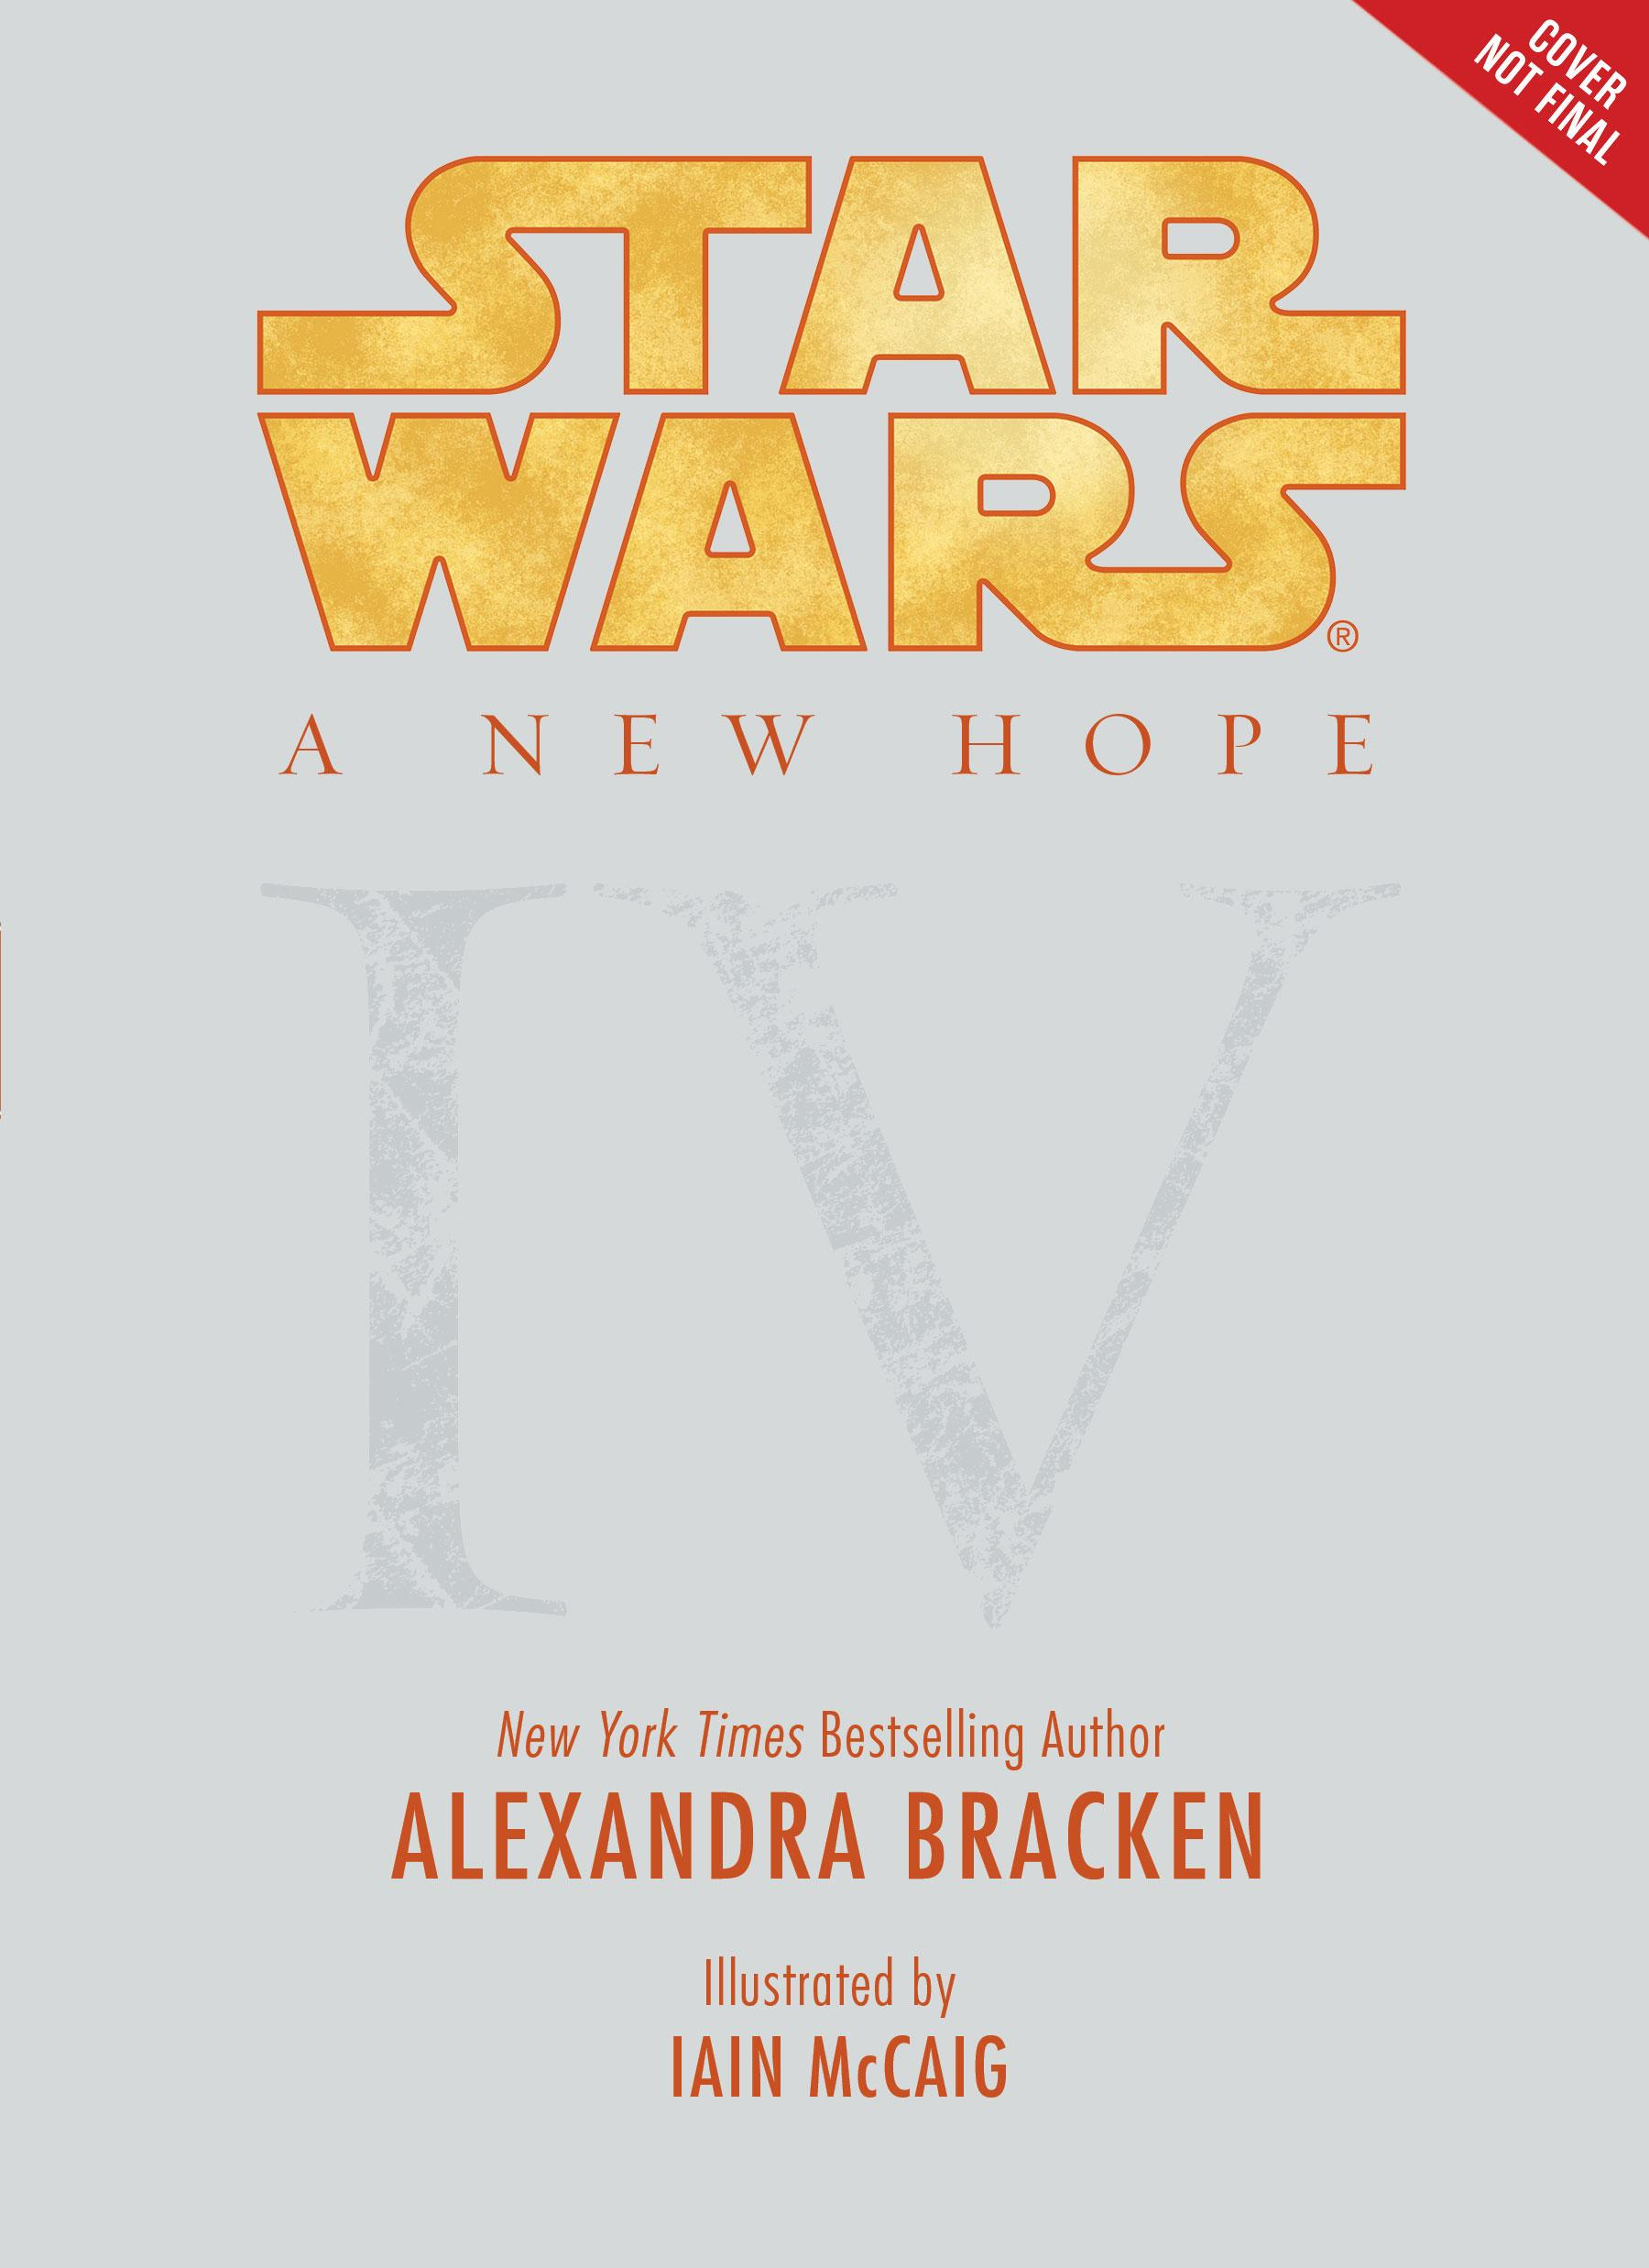 A New Hope: Being the Story of Luke Skywalker, Darth Vader, and the Rise of the Rebellion (Star Wars, Episode IV) by R. J. Palacio, ISBN: 9781484709122